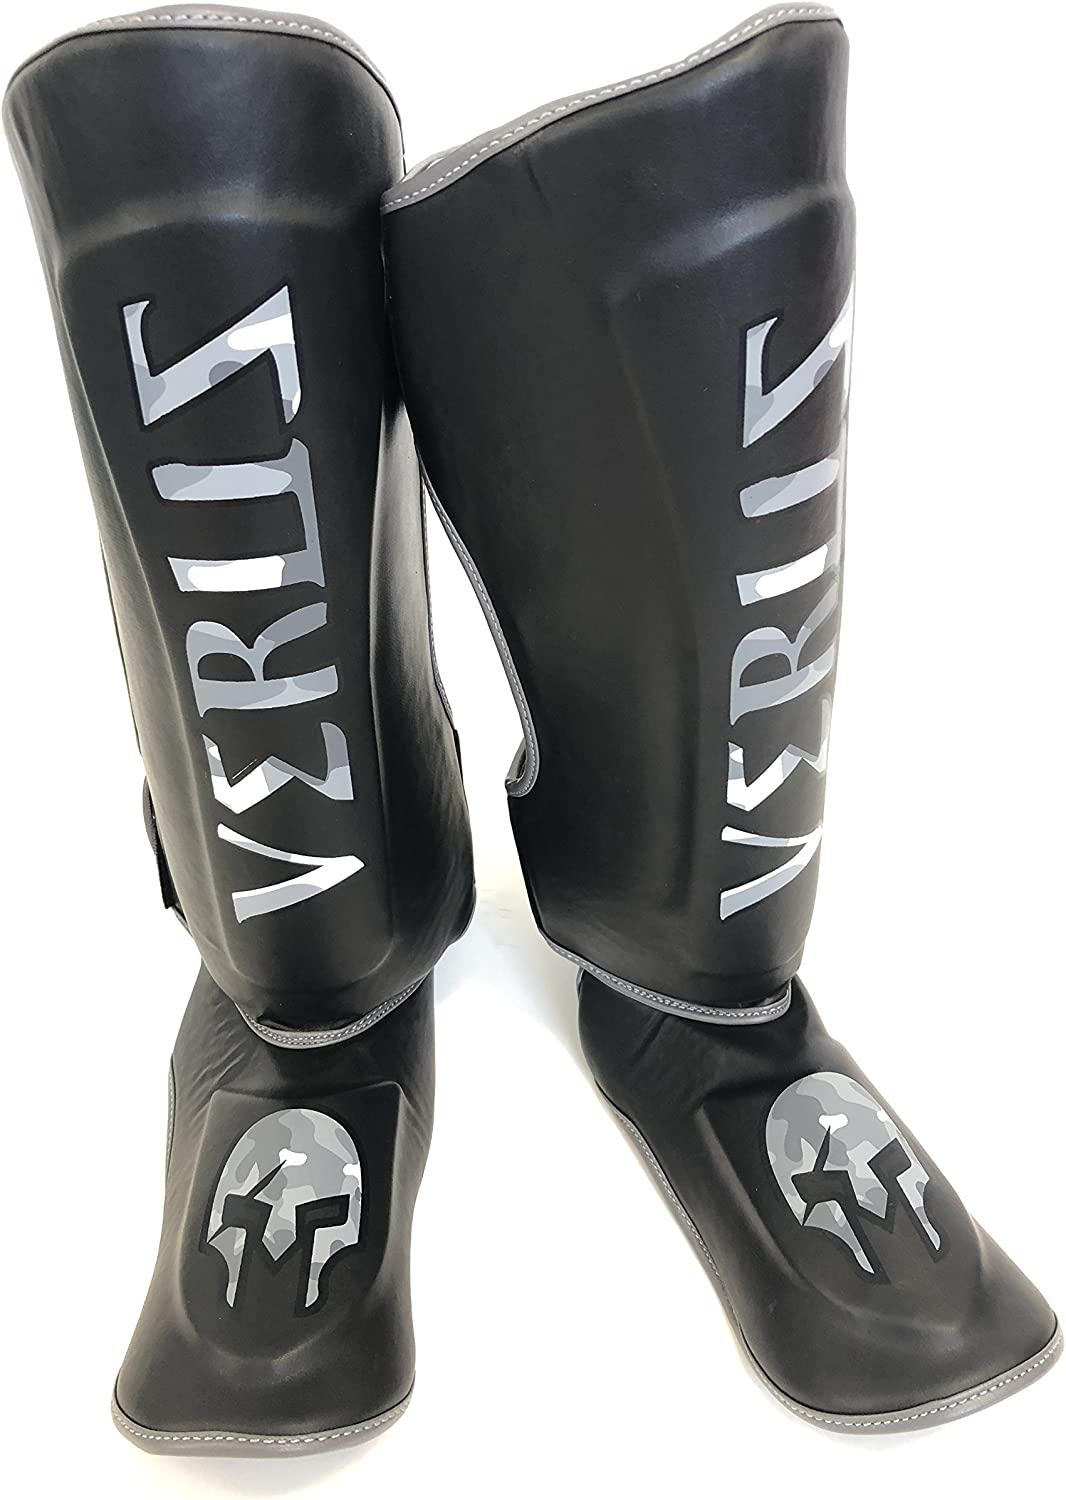 Shin In step Guards Muay Thai Kickboxing MMA Leg /& foot Support Protector Black